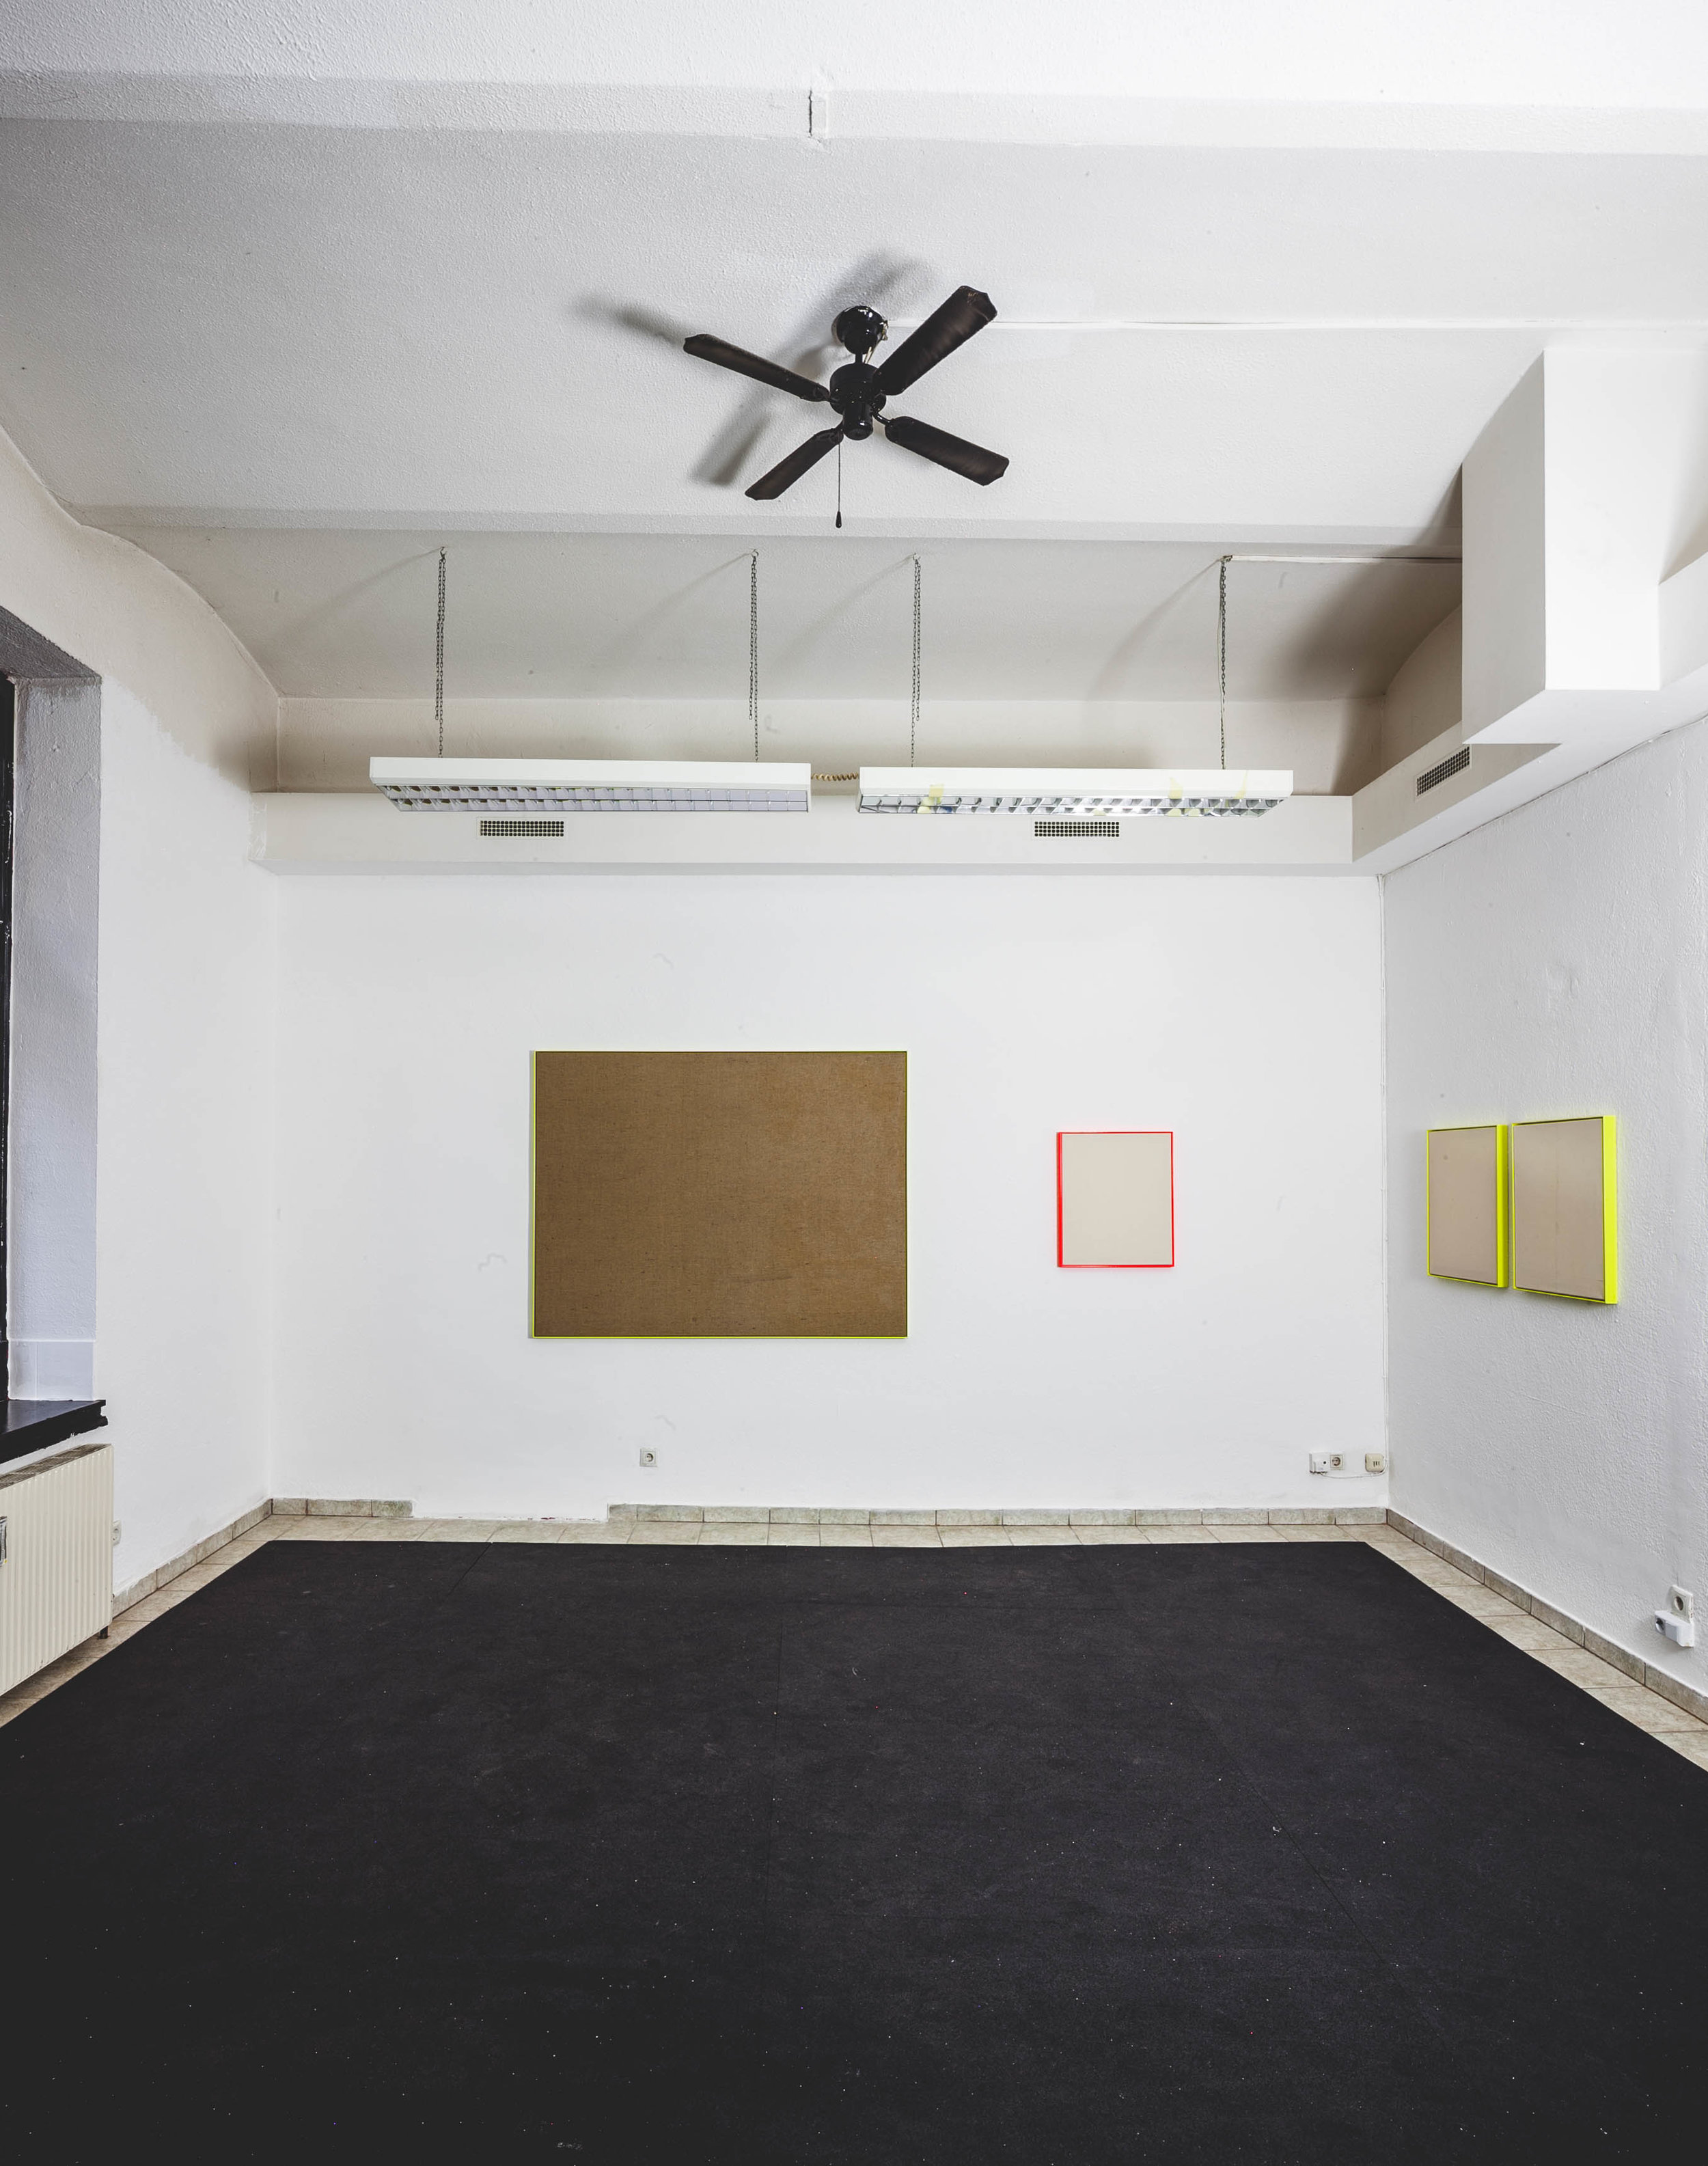 RAY // installation view  2018 // various sizes  powder coated steel and canvas  Space Properties @ Galerie Hribernig  Photo: Tristan Ruck